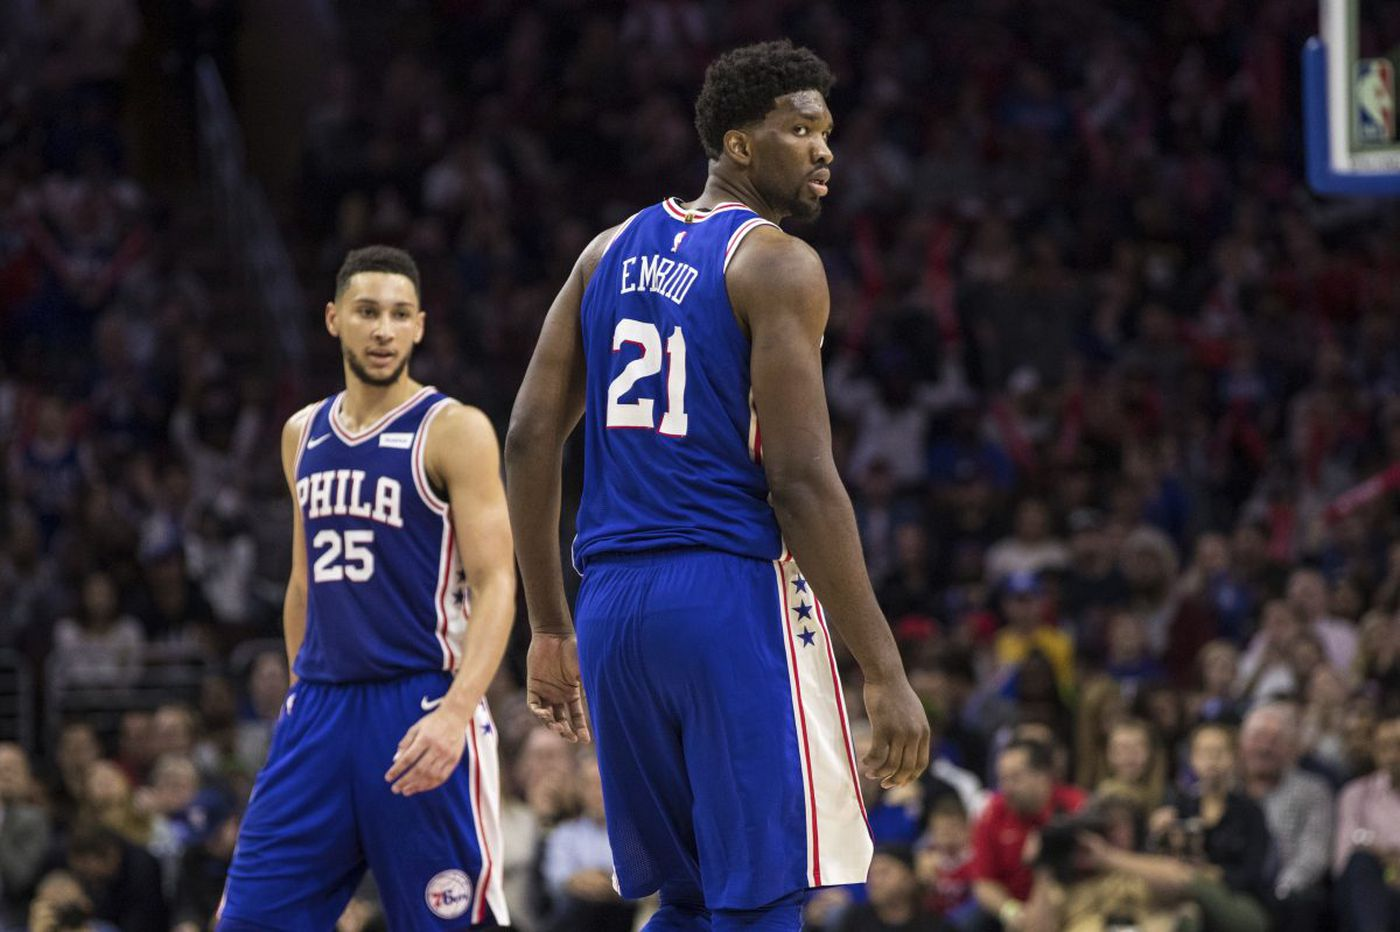 A few Sixers thoughts: Joel Embiid's turnovers, Ben Simmons 'D', TLC's touch | David Murphy